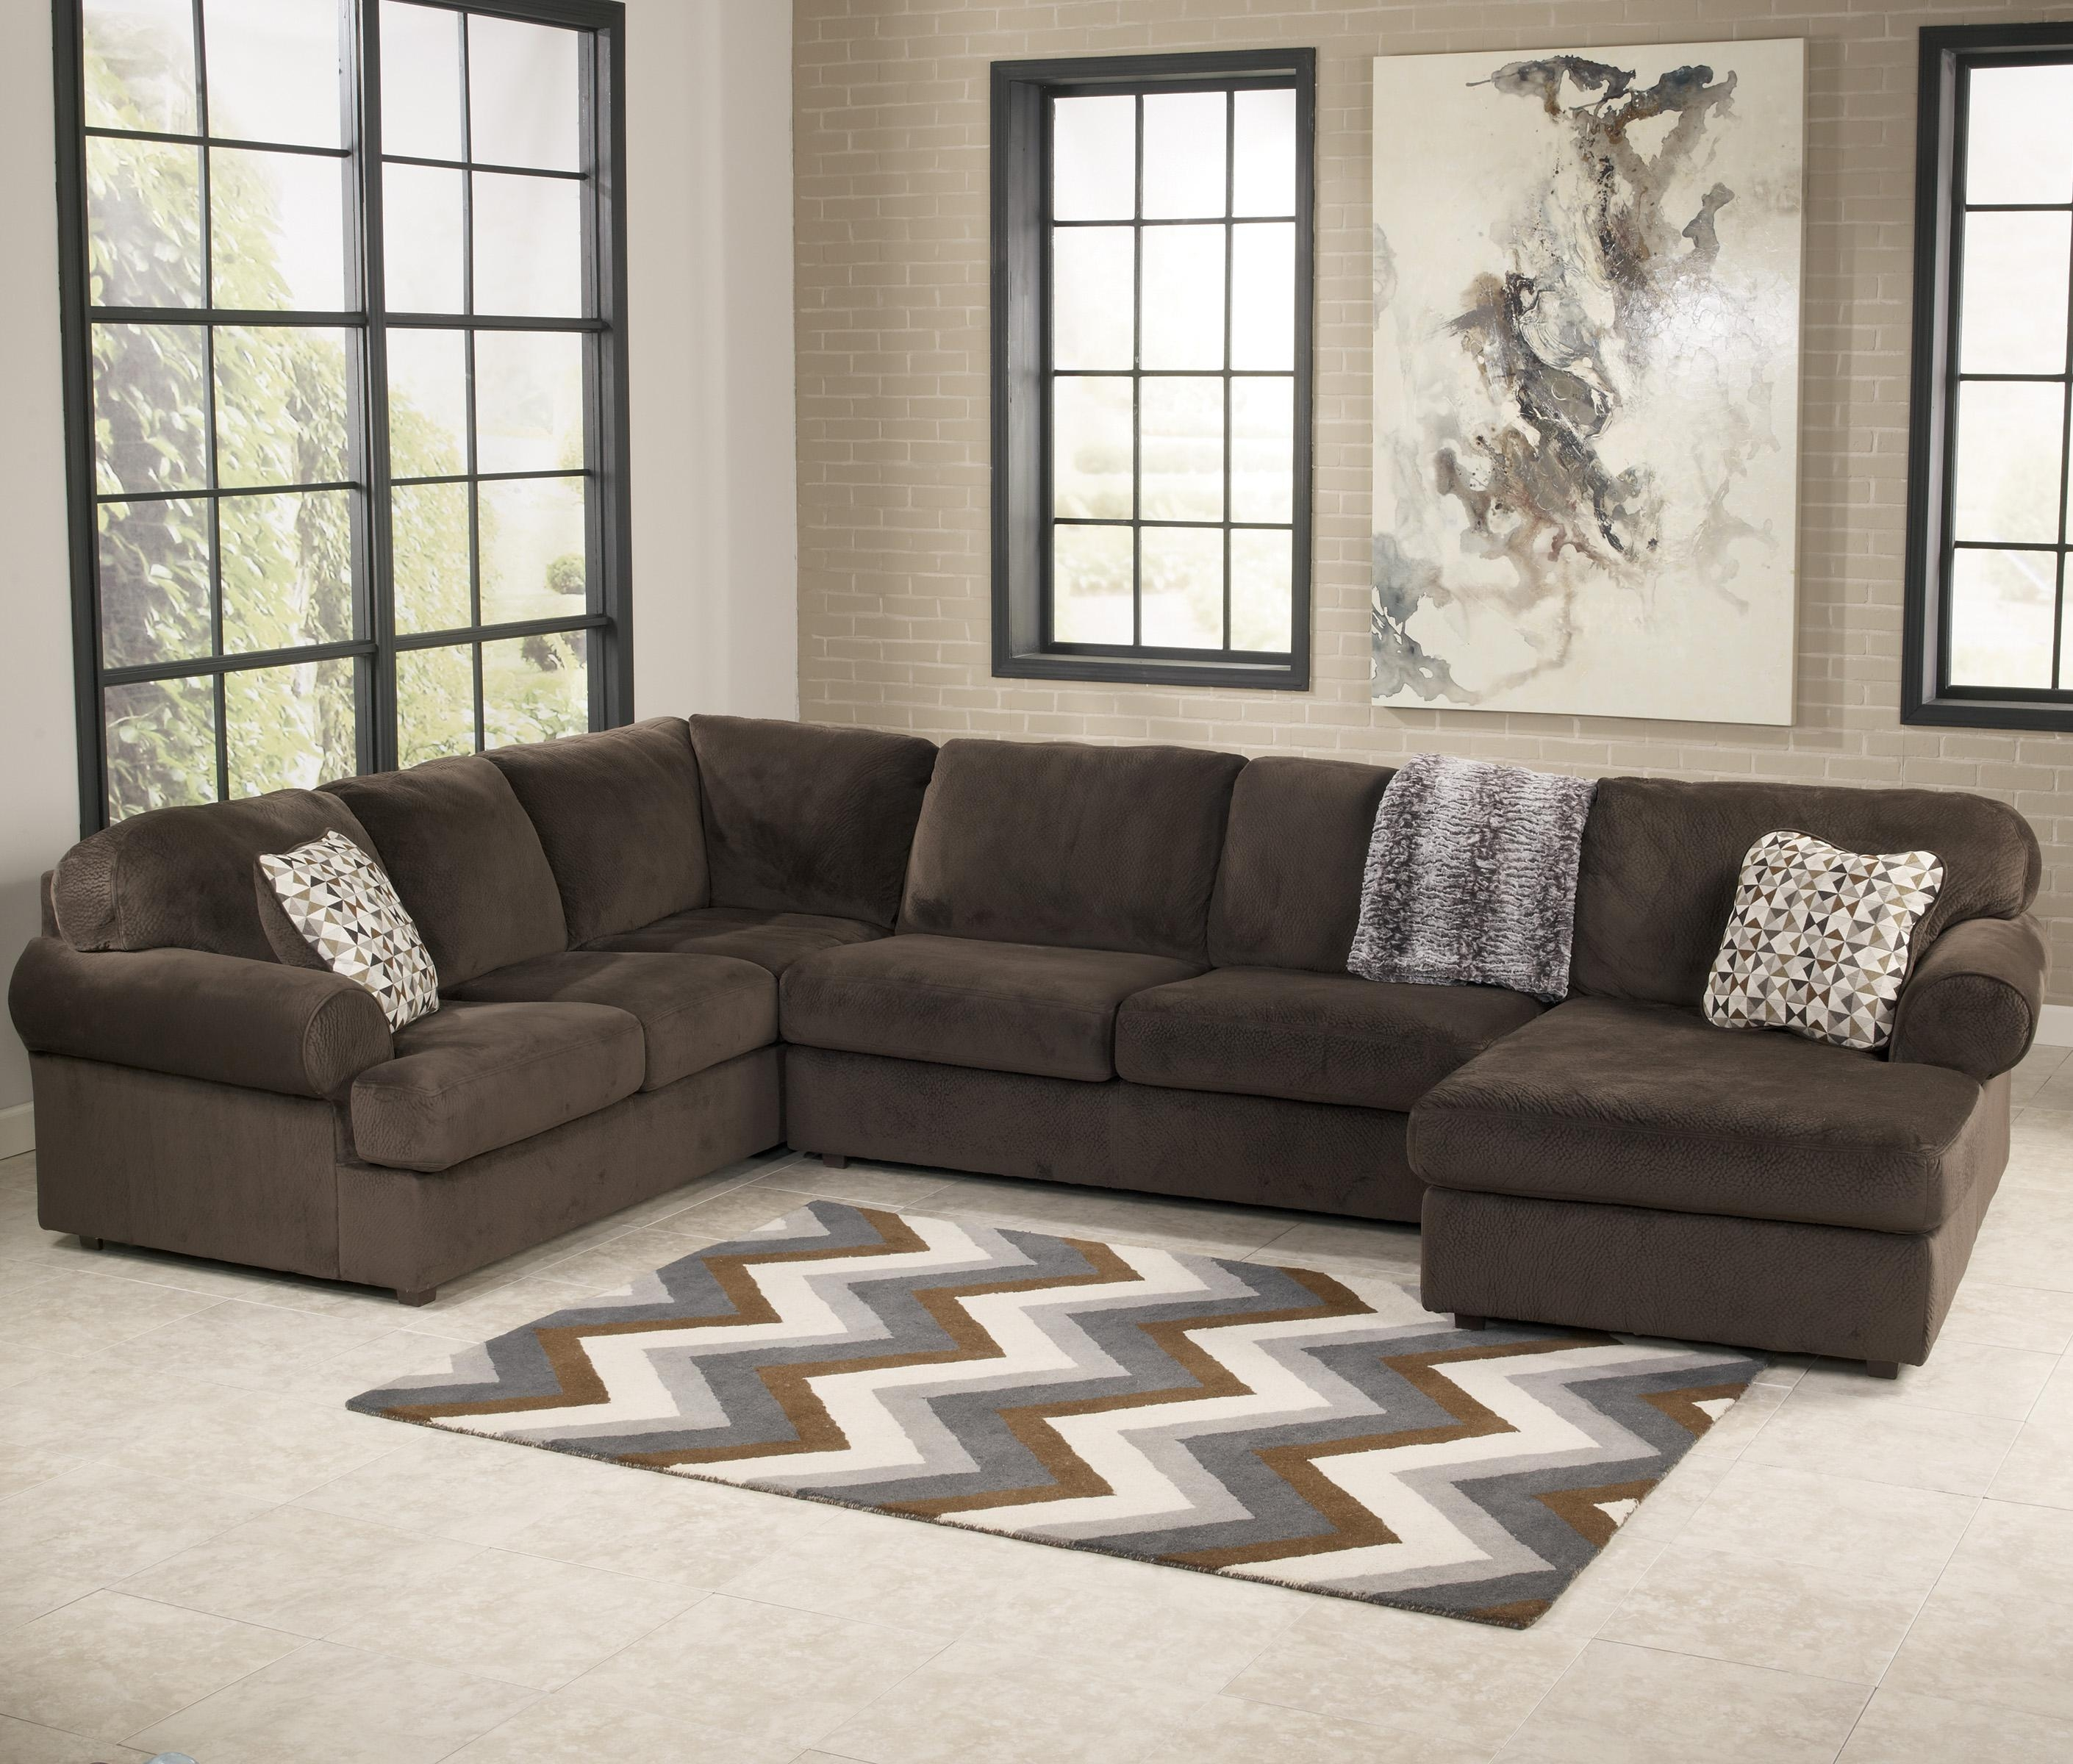 Signature Designashley Jessa Place – Chocolate Casual Inside Ashley Curved Sectional (Image 13 of 15)